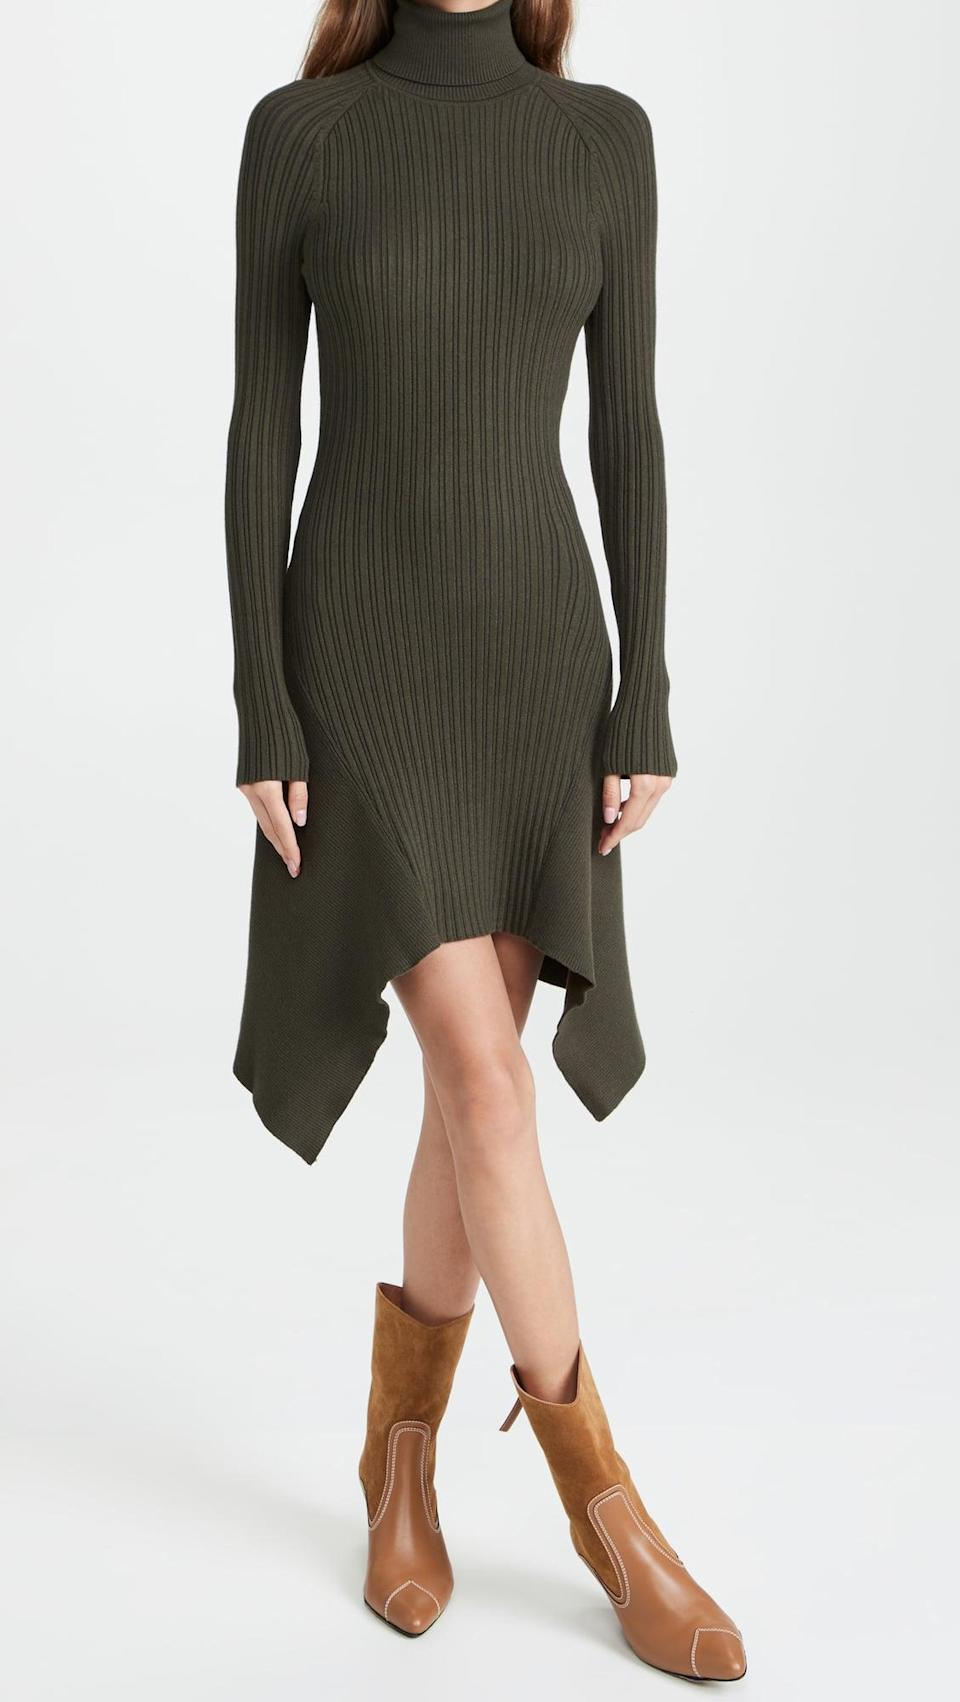 <p>This olive green <span>Ramy Brook Miley Dress</span> ($395) is adorable. We're into the hemline and the turtleneck.</p>